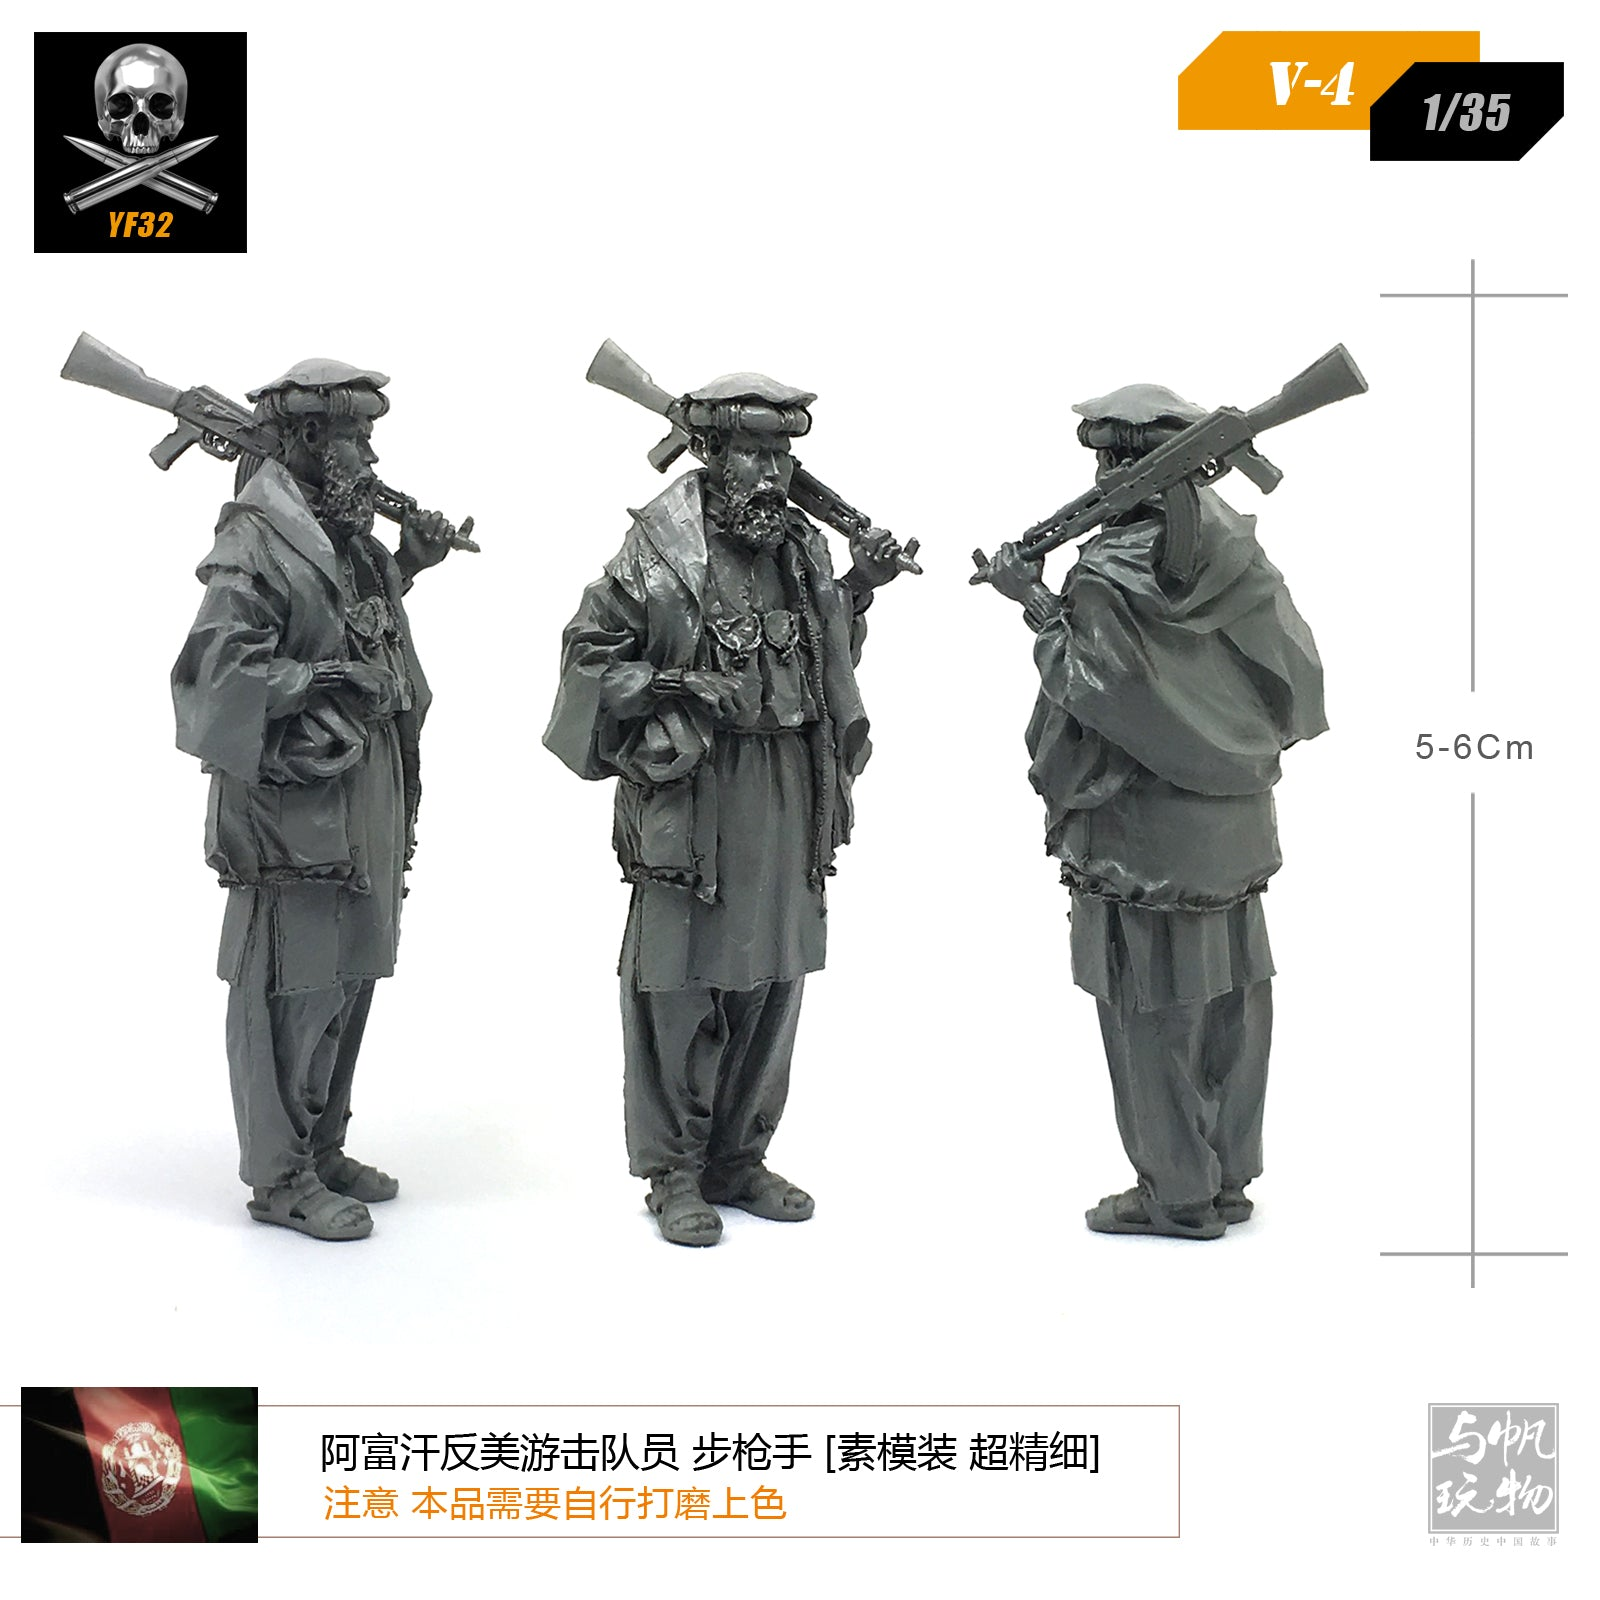 1/35 Afghan anti-American guerrillas rifleman resin soldiers soldiers element [plain mold super fine] V4